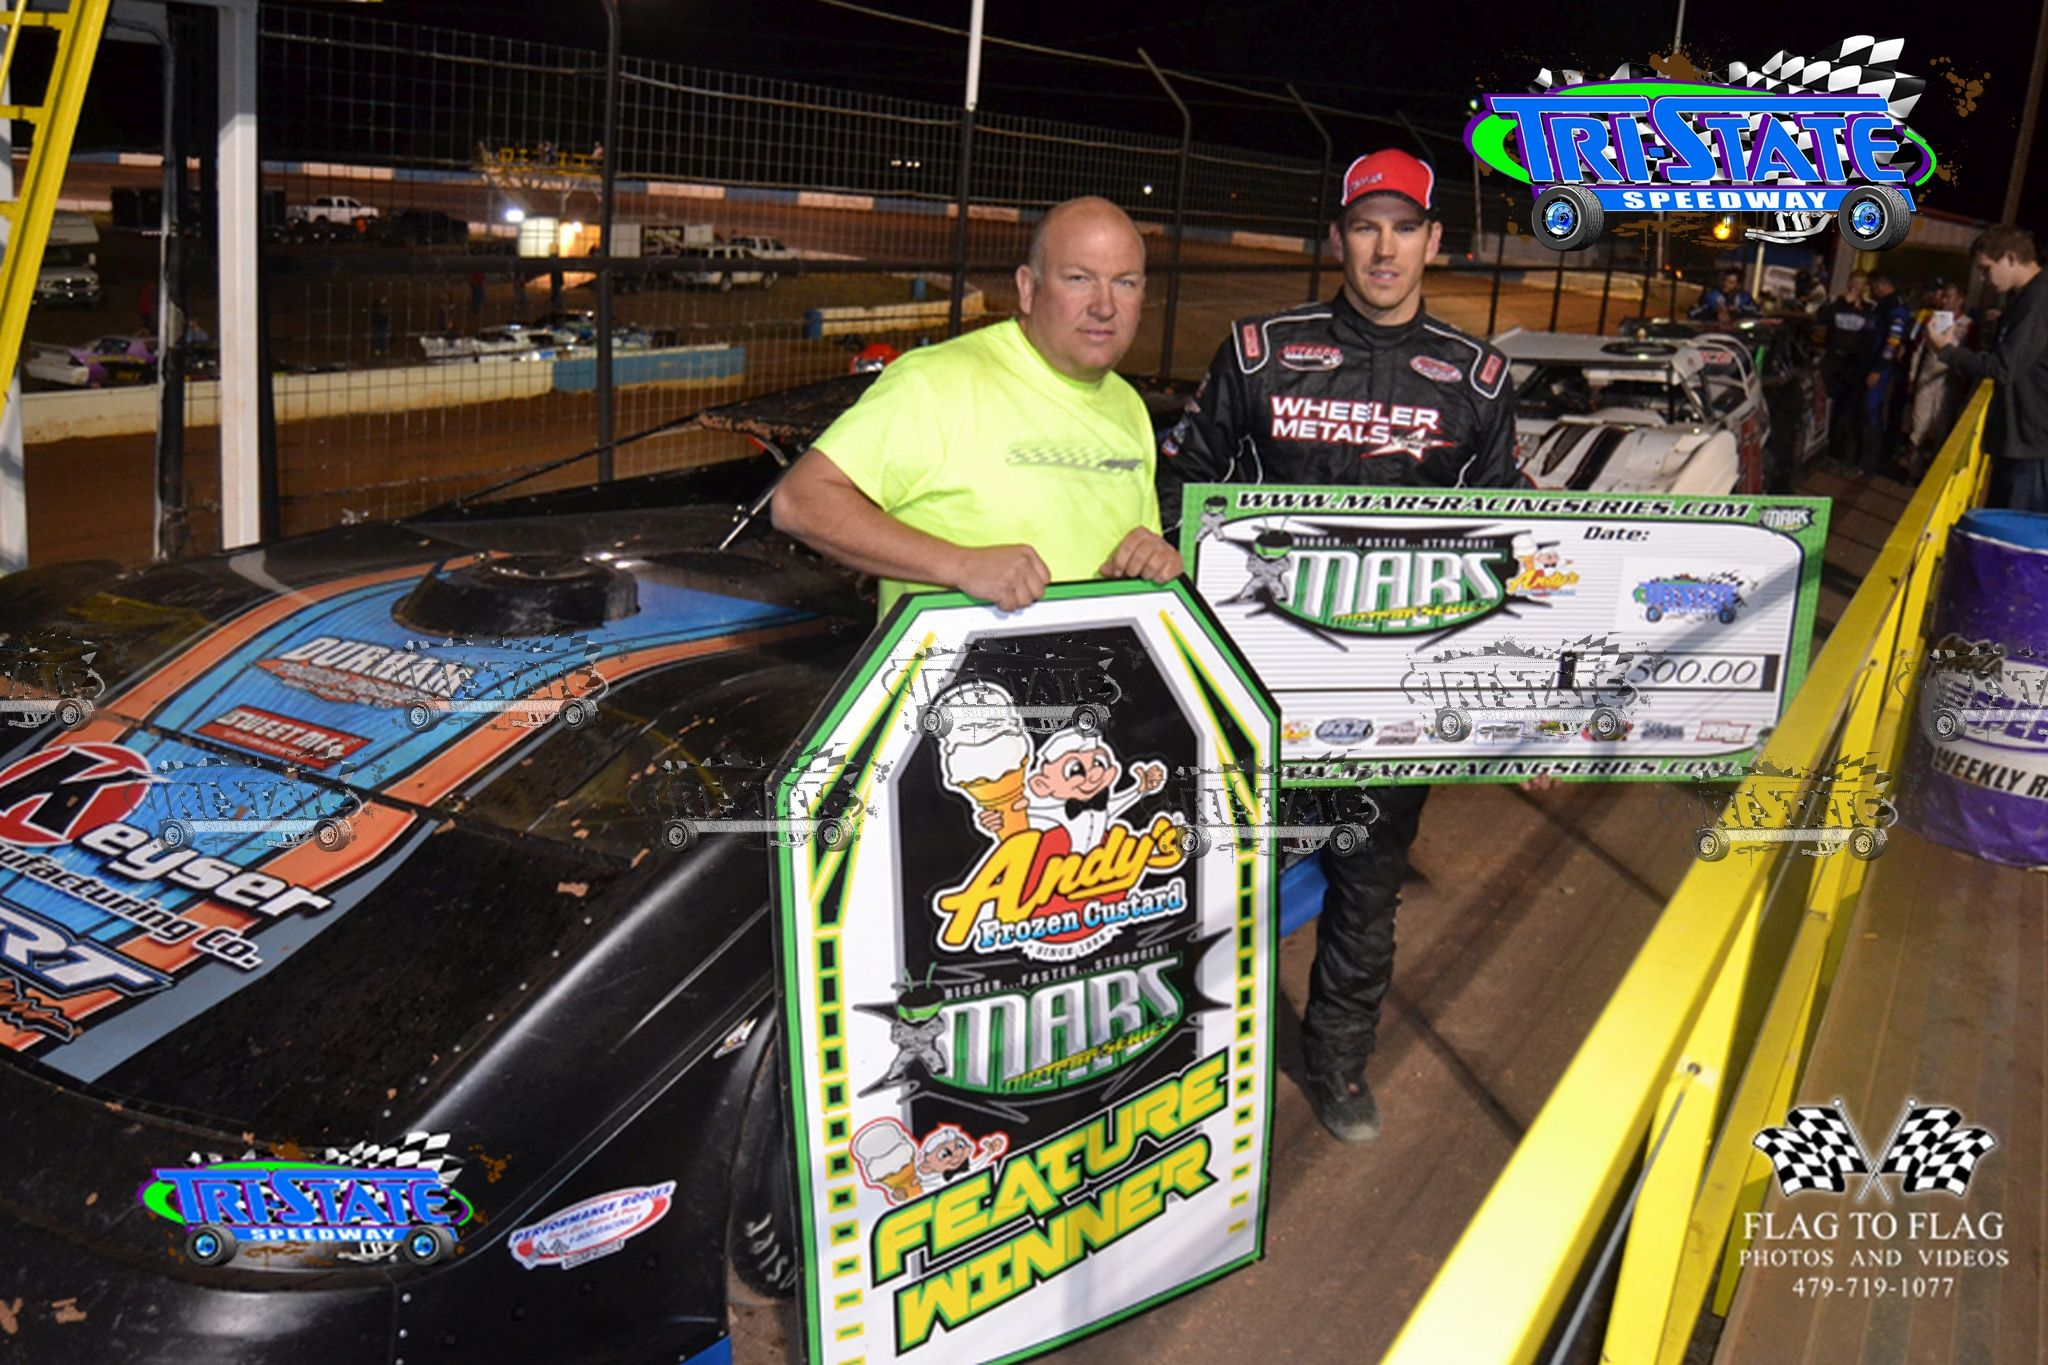 Johnston Wins 9 and Claims Championship